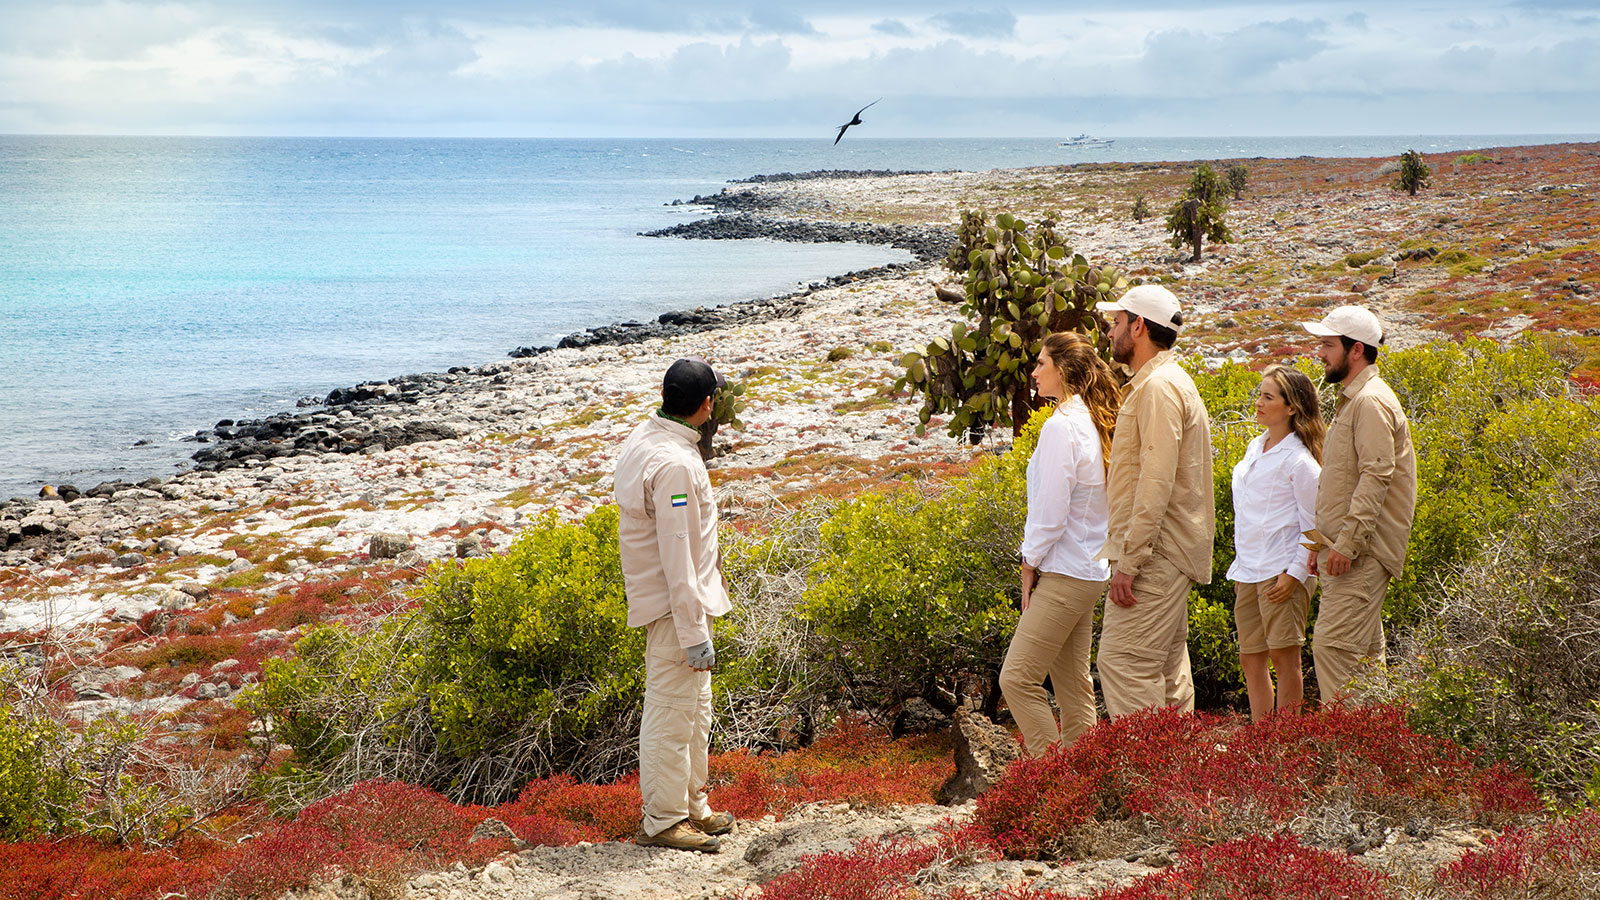 Private excursions on the South Plaza Island, a place where there are innumerable sea birds